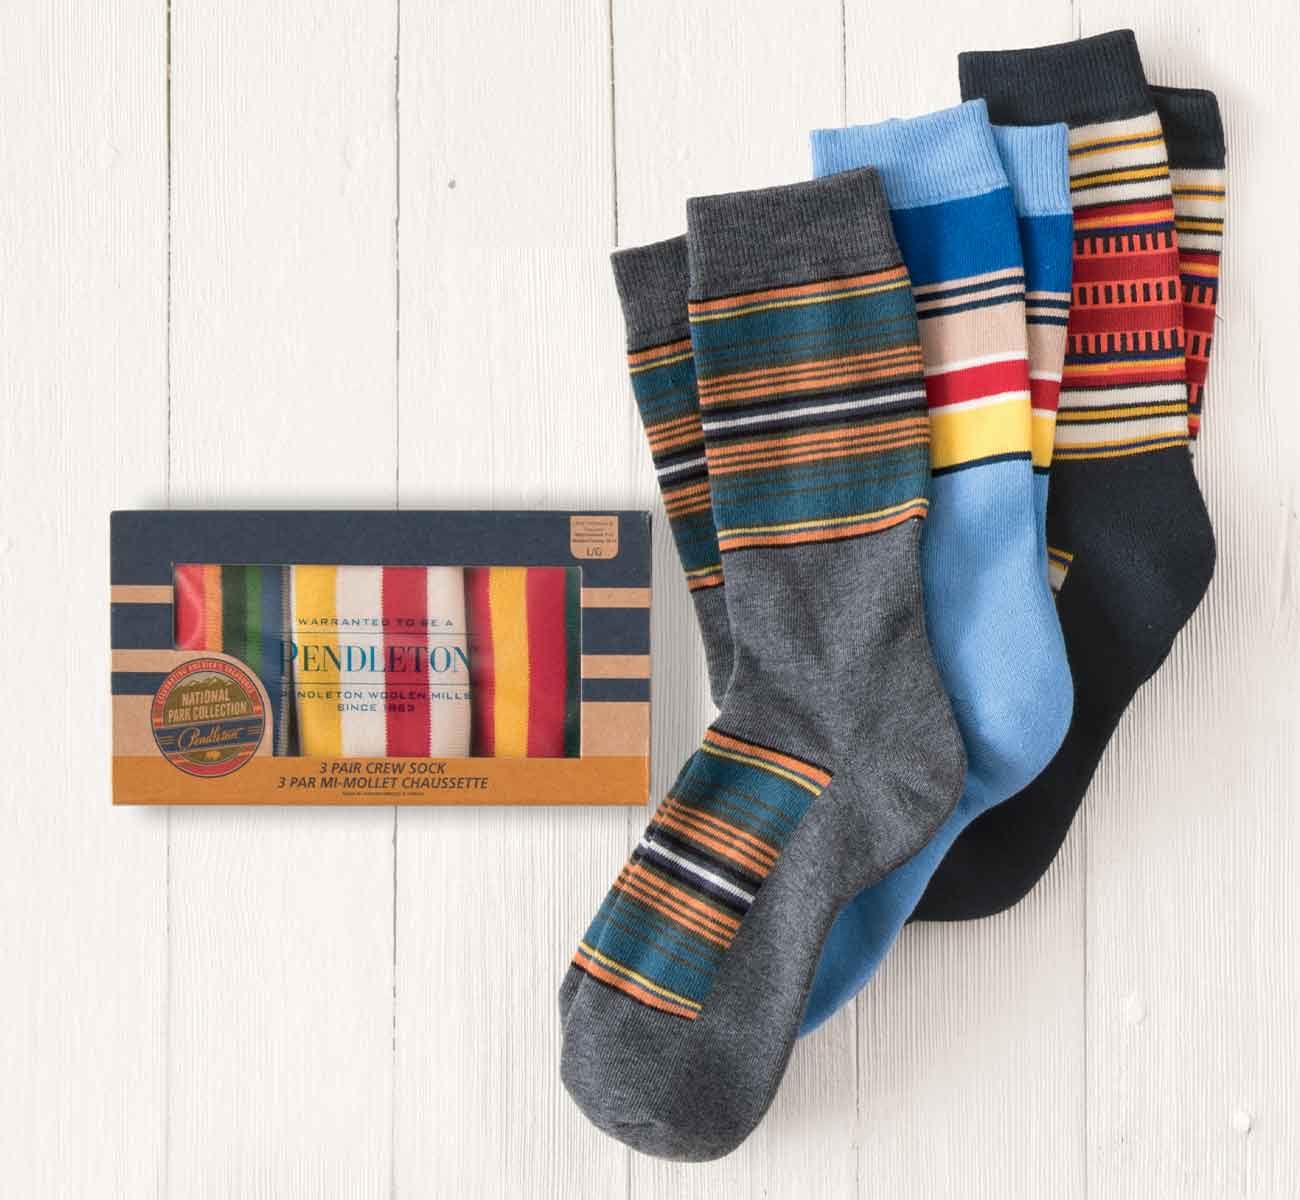 Three pairs of colorful striped socks next to a gift box